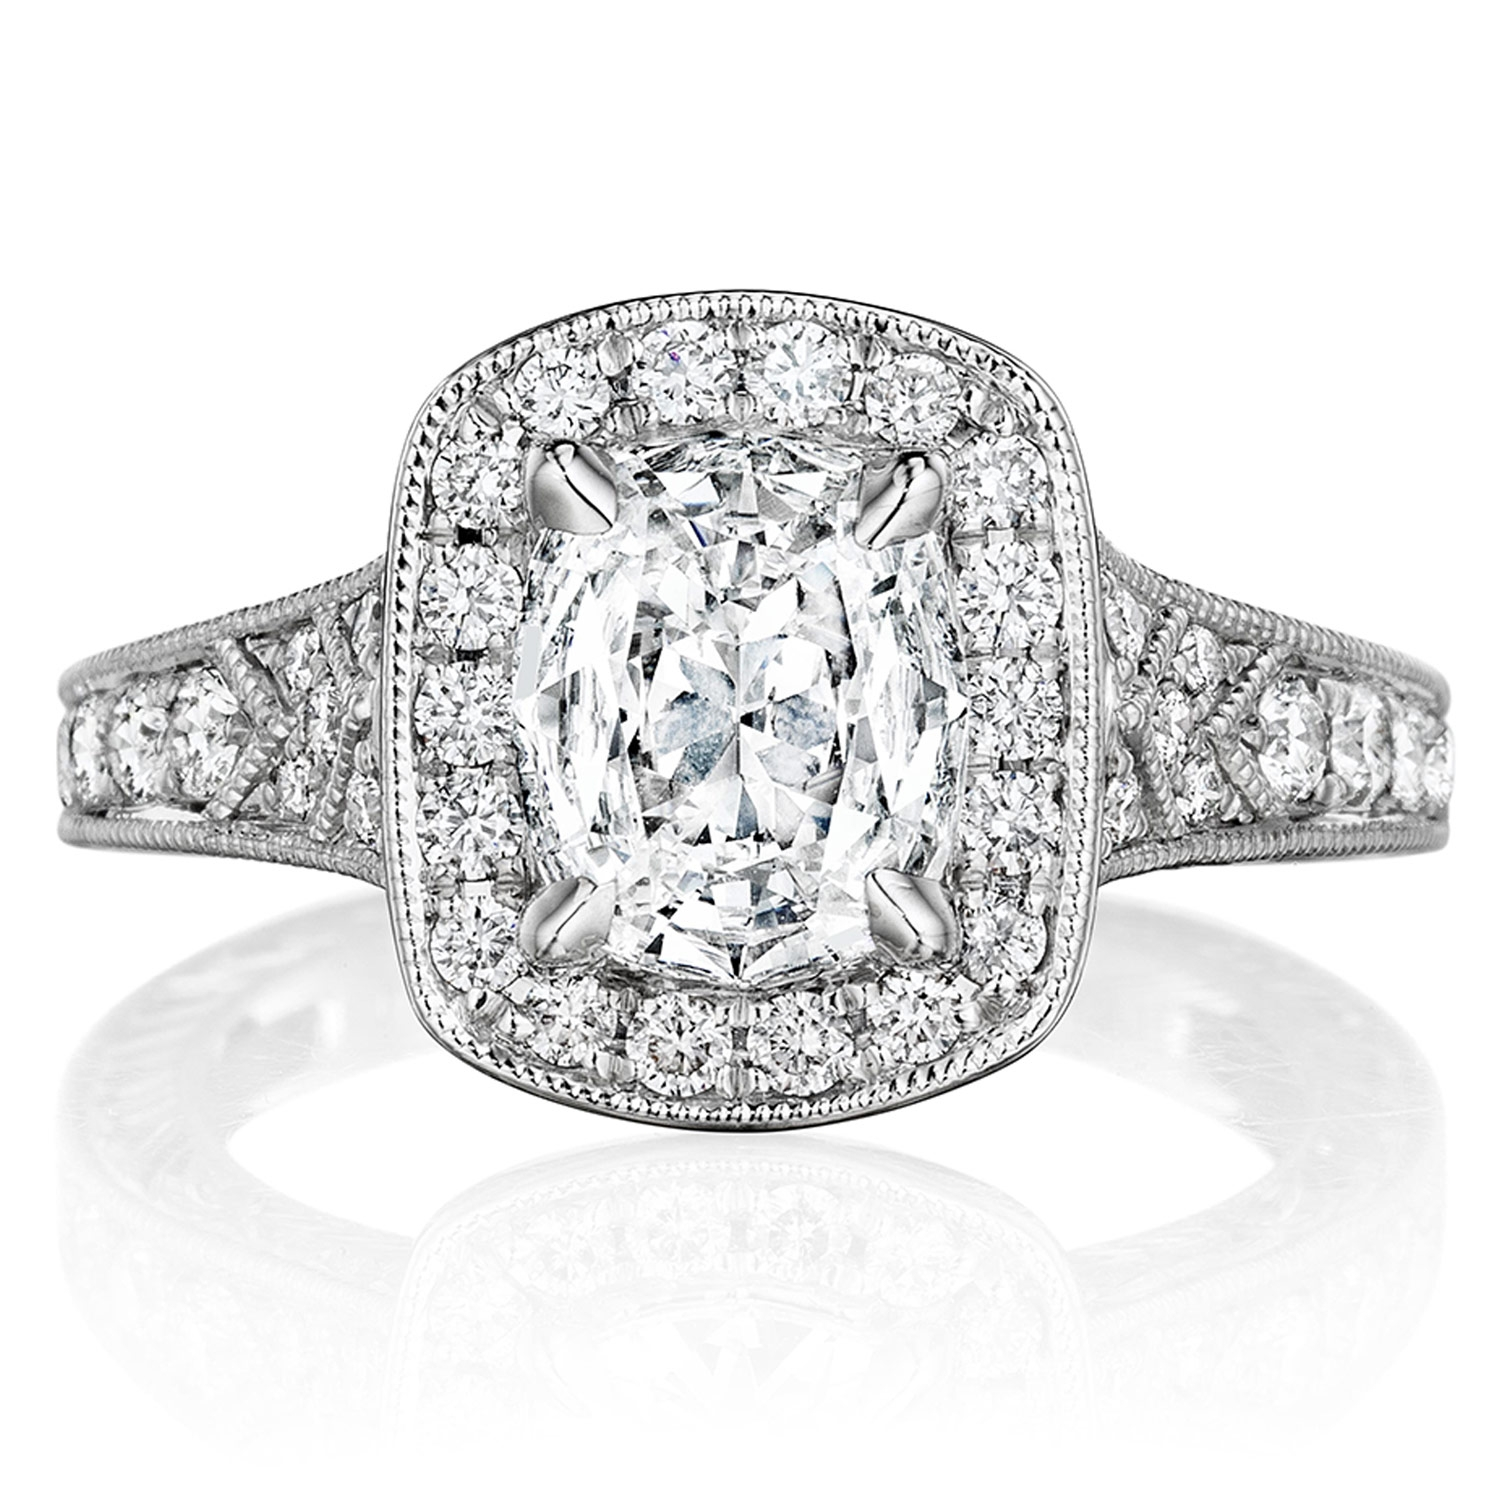 Henri Daussi AZP Cushion Halo Graduated Accent Diamonds Engagement Ring